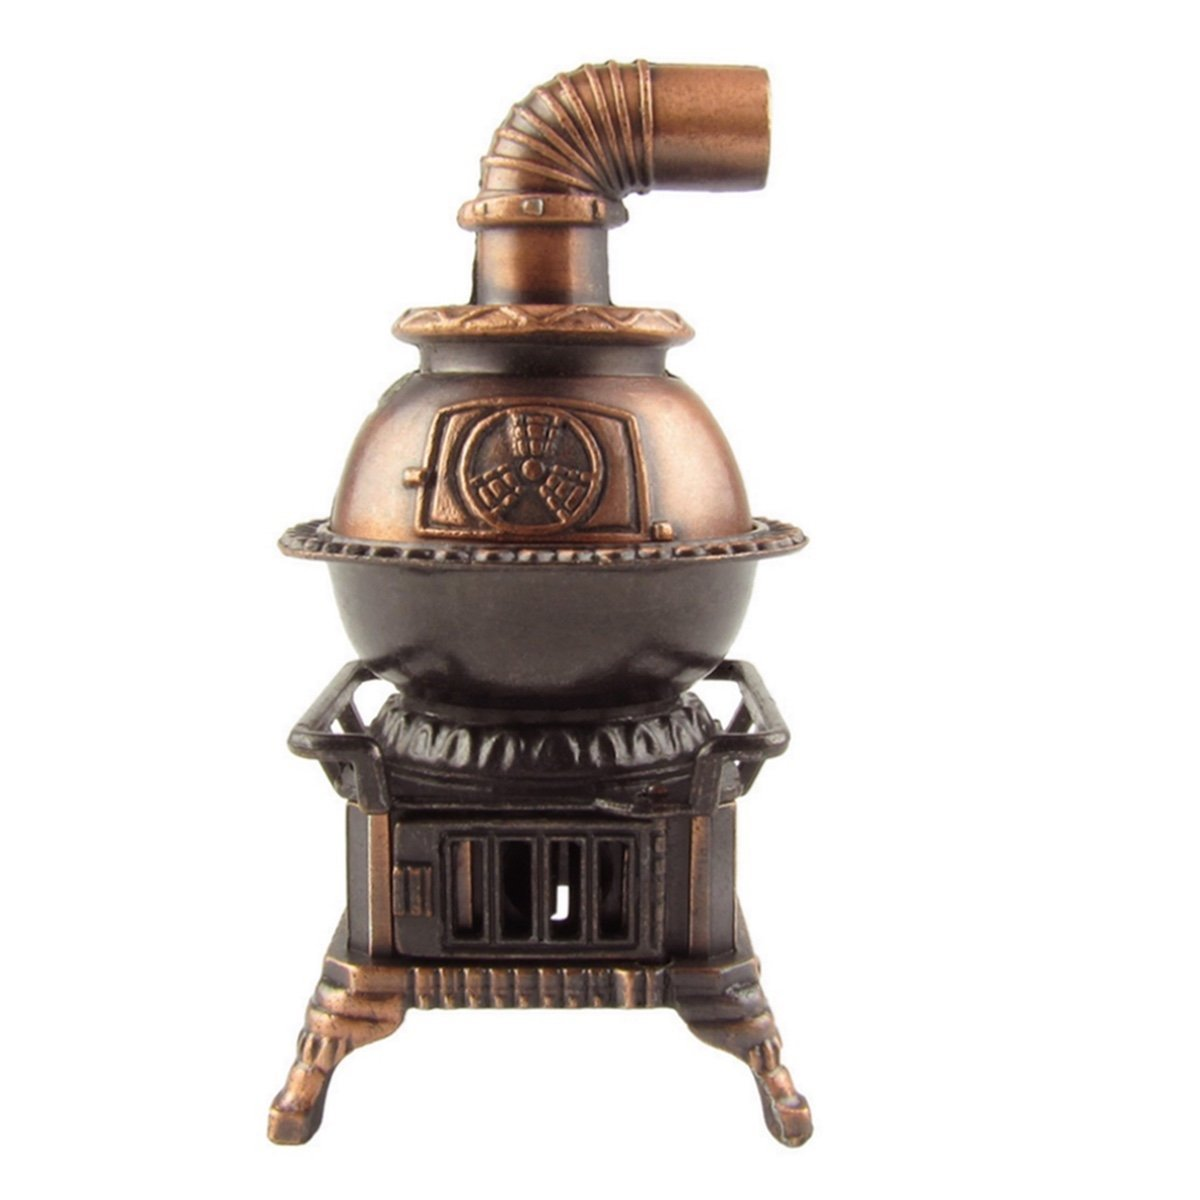 1:12 Scale Model Miniature Pot Belly Stove Dollhouse Accessory Pencil Sharpener, Keep your